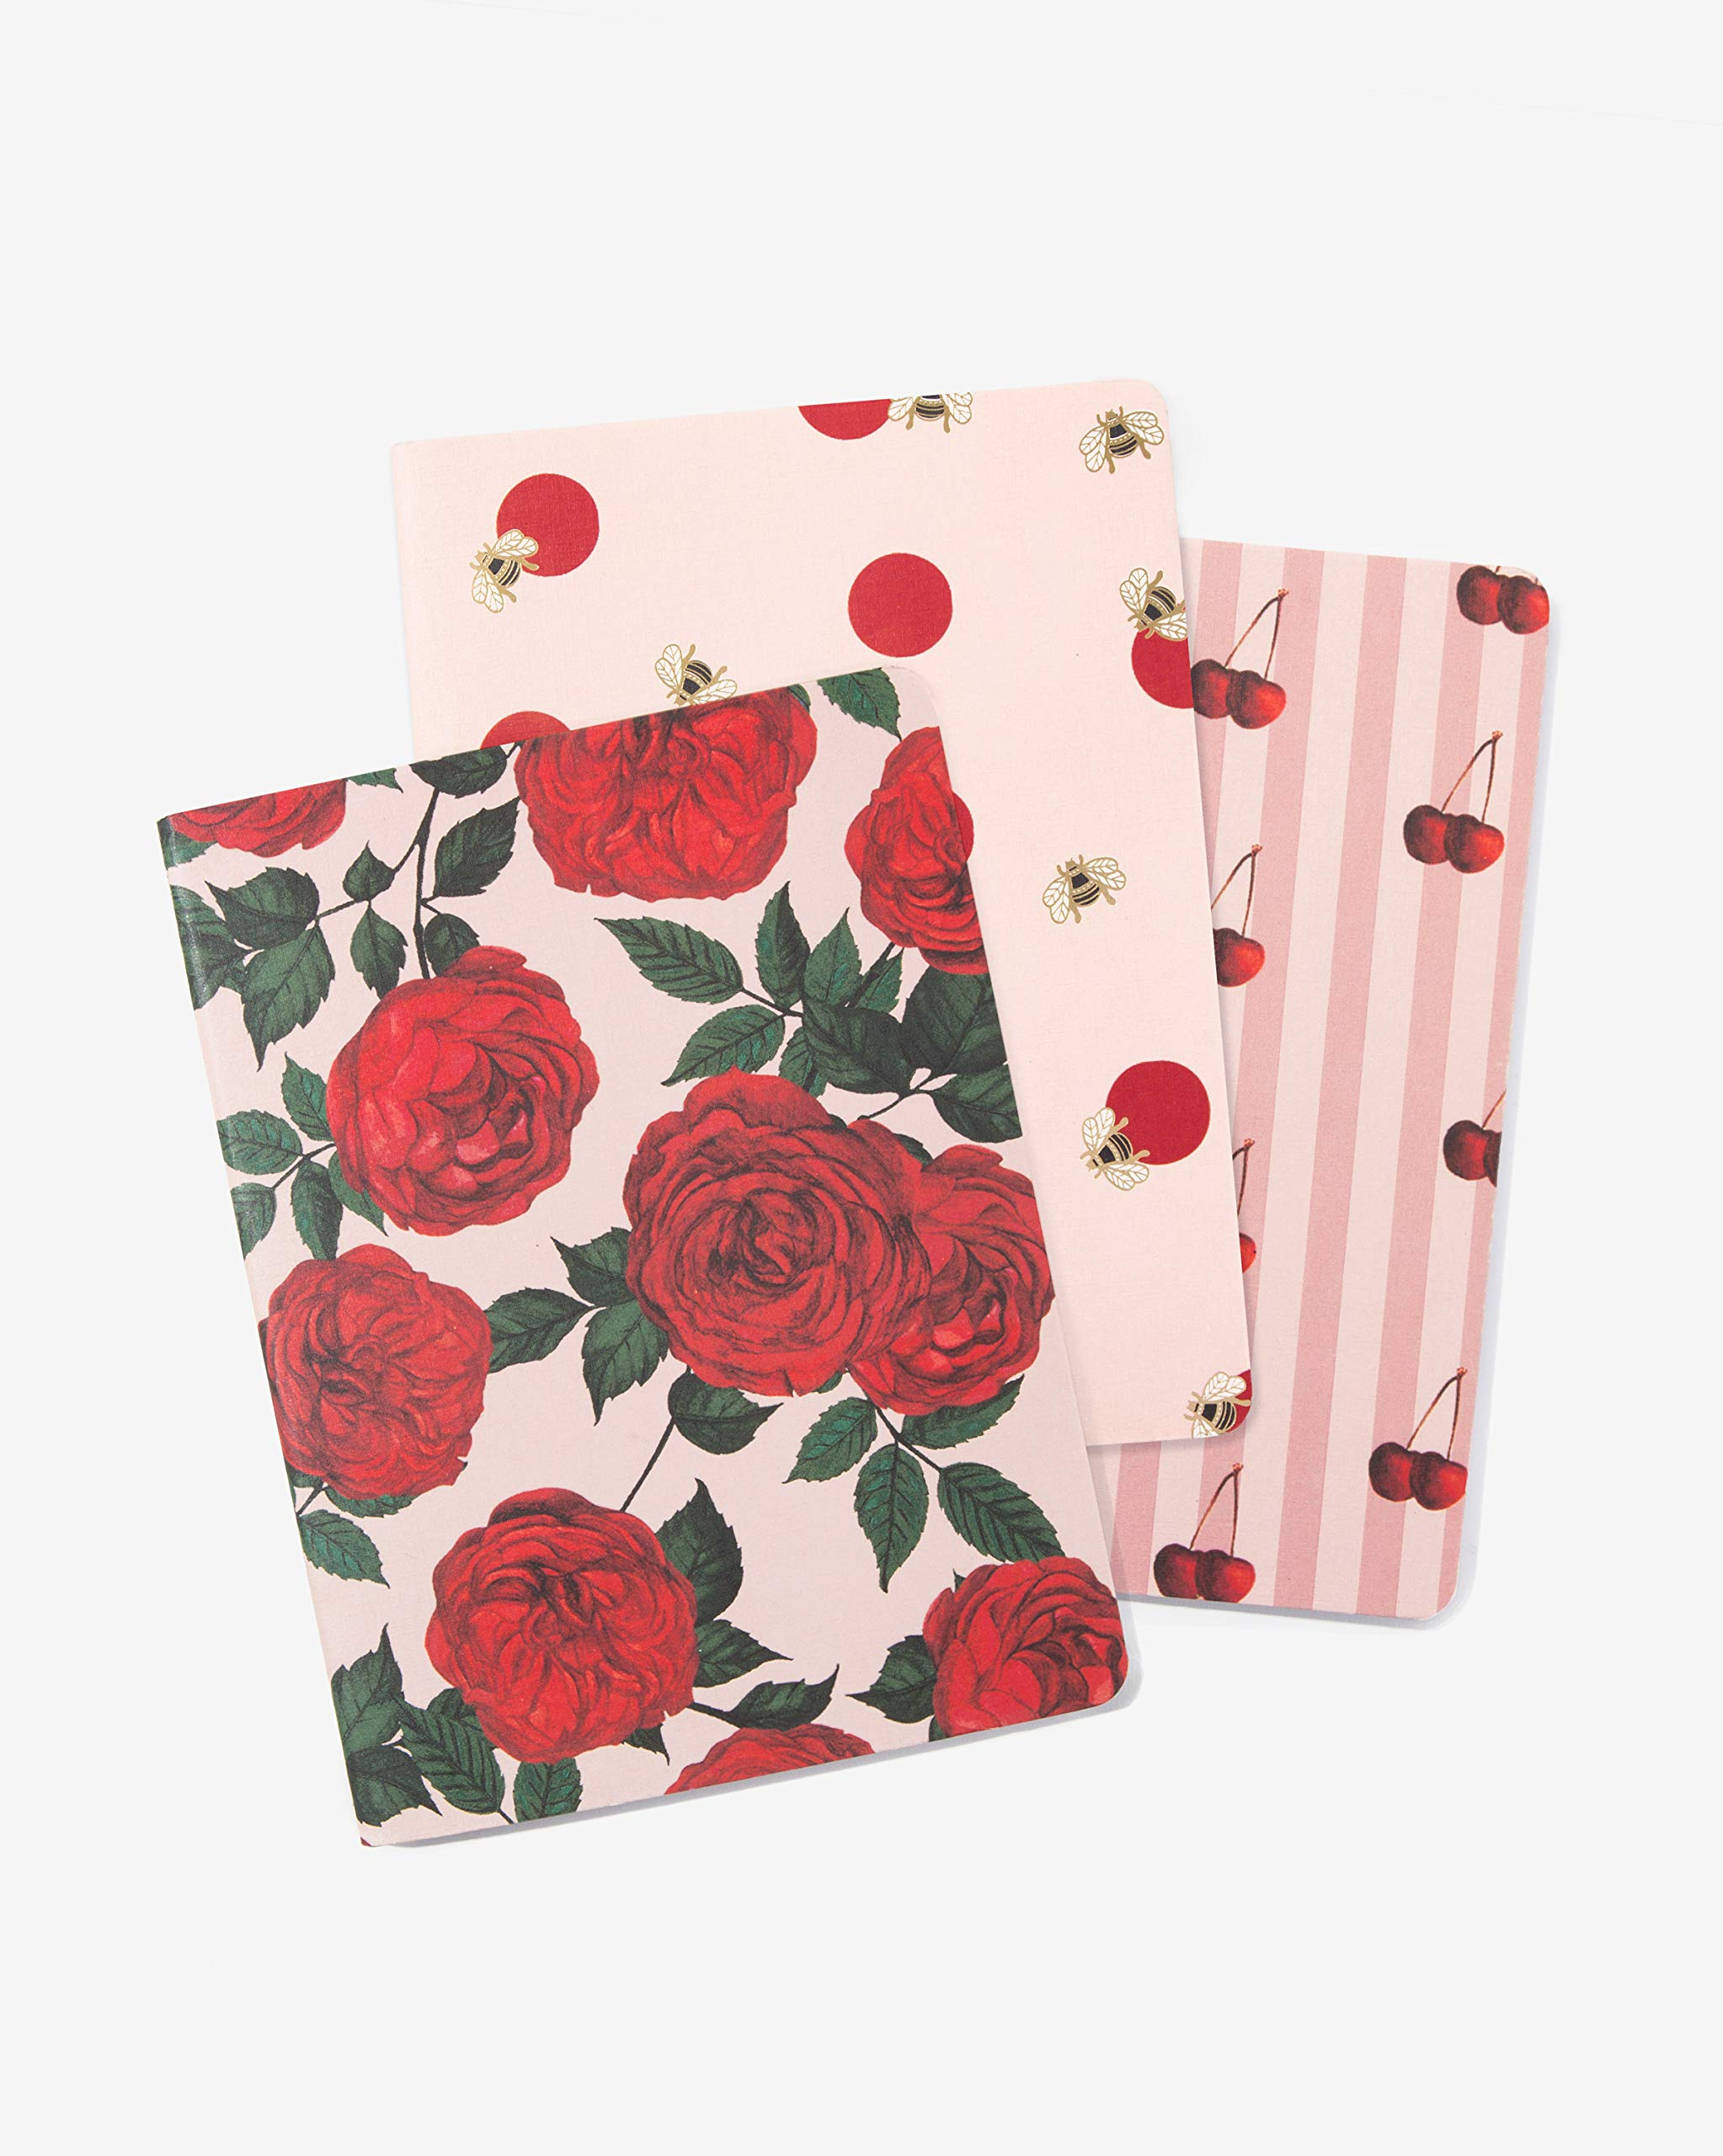 Sonix Stationery [3-Pack] Limited Edition Notebook Set - Amaretto